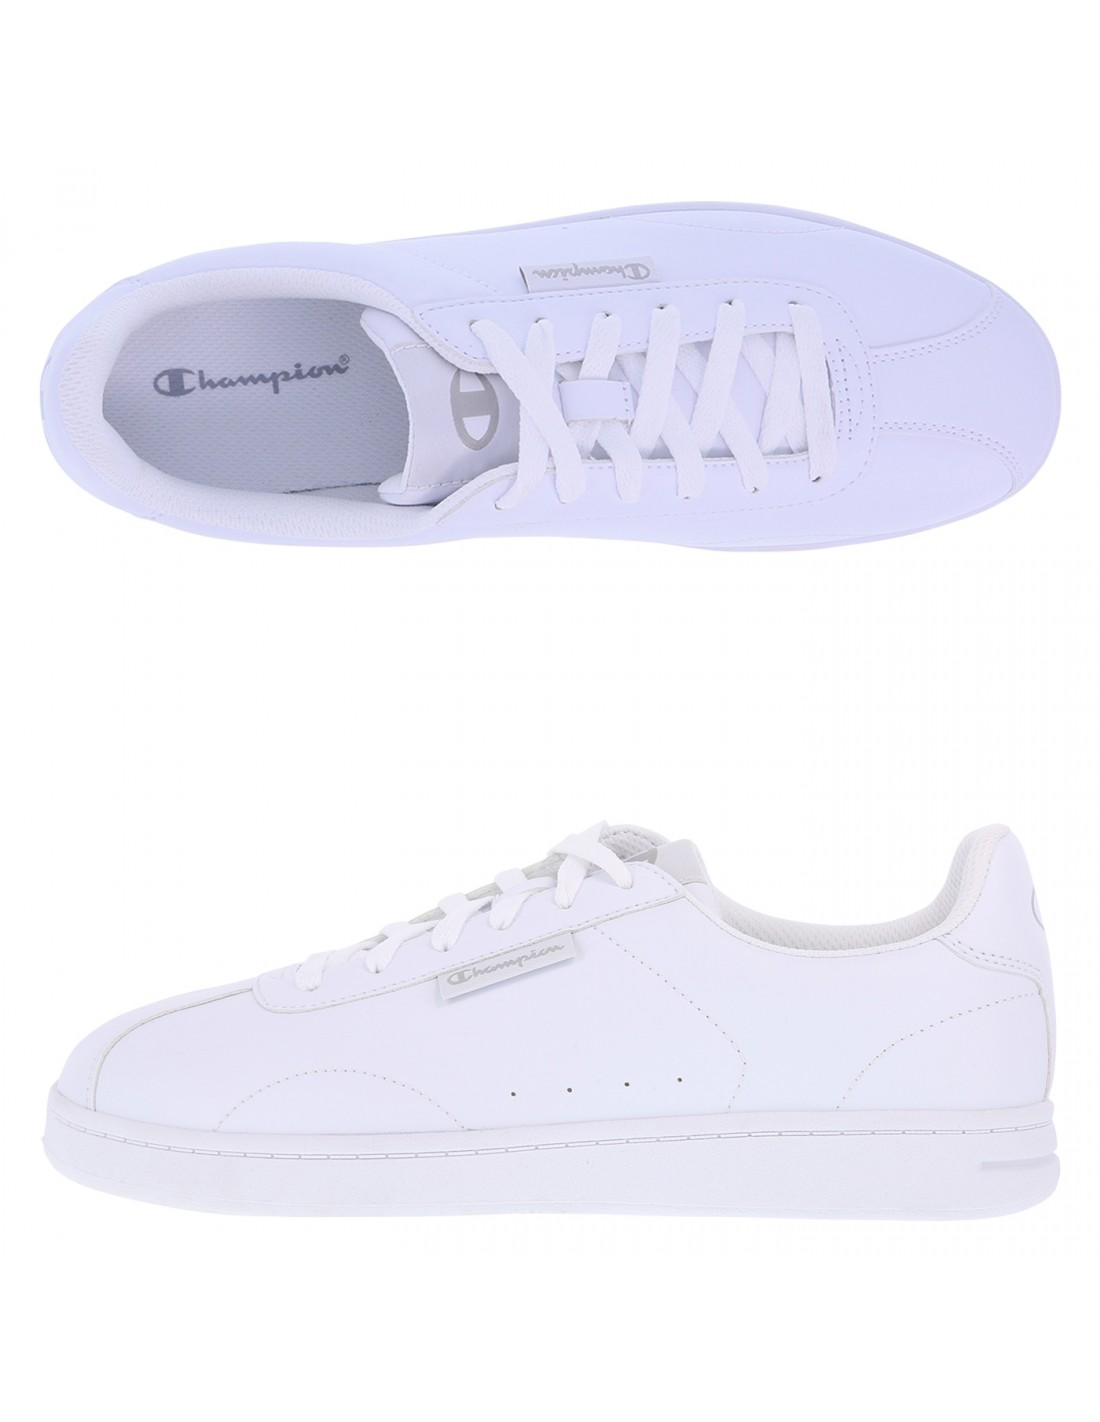 79d7fa40a710 Men s Rally Court sneakers - White